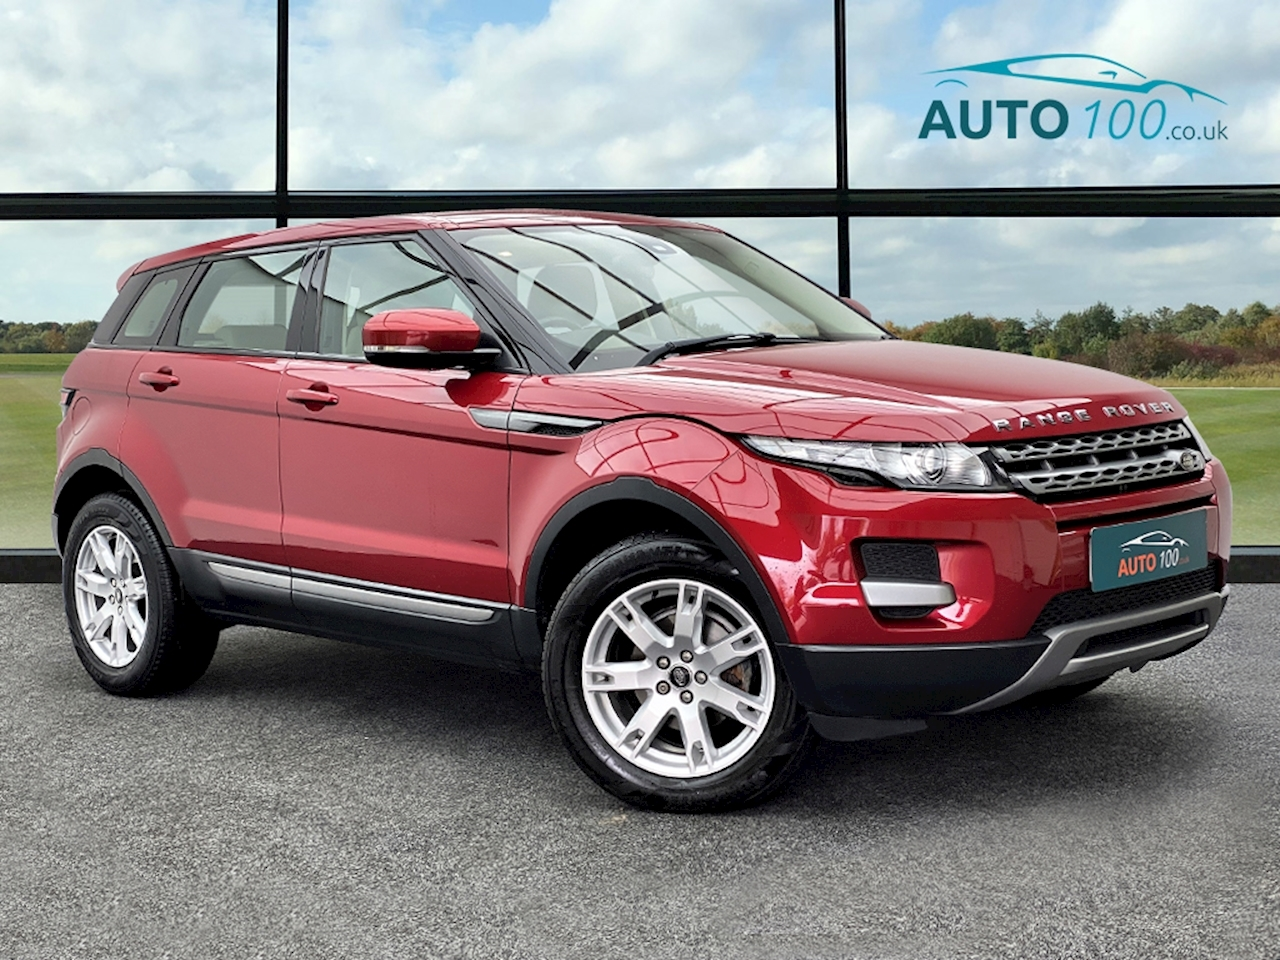 Land Rover Range Rover Evoque Sd4 Pure Estate 2.2 Manual Diesel